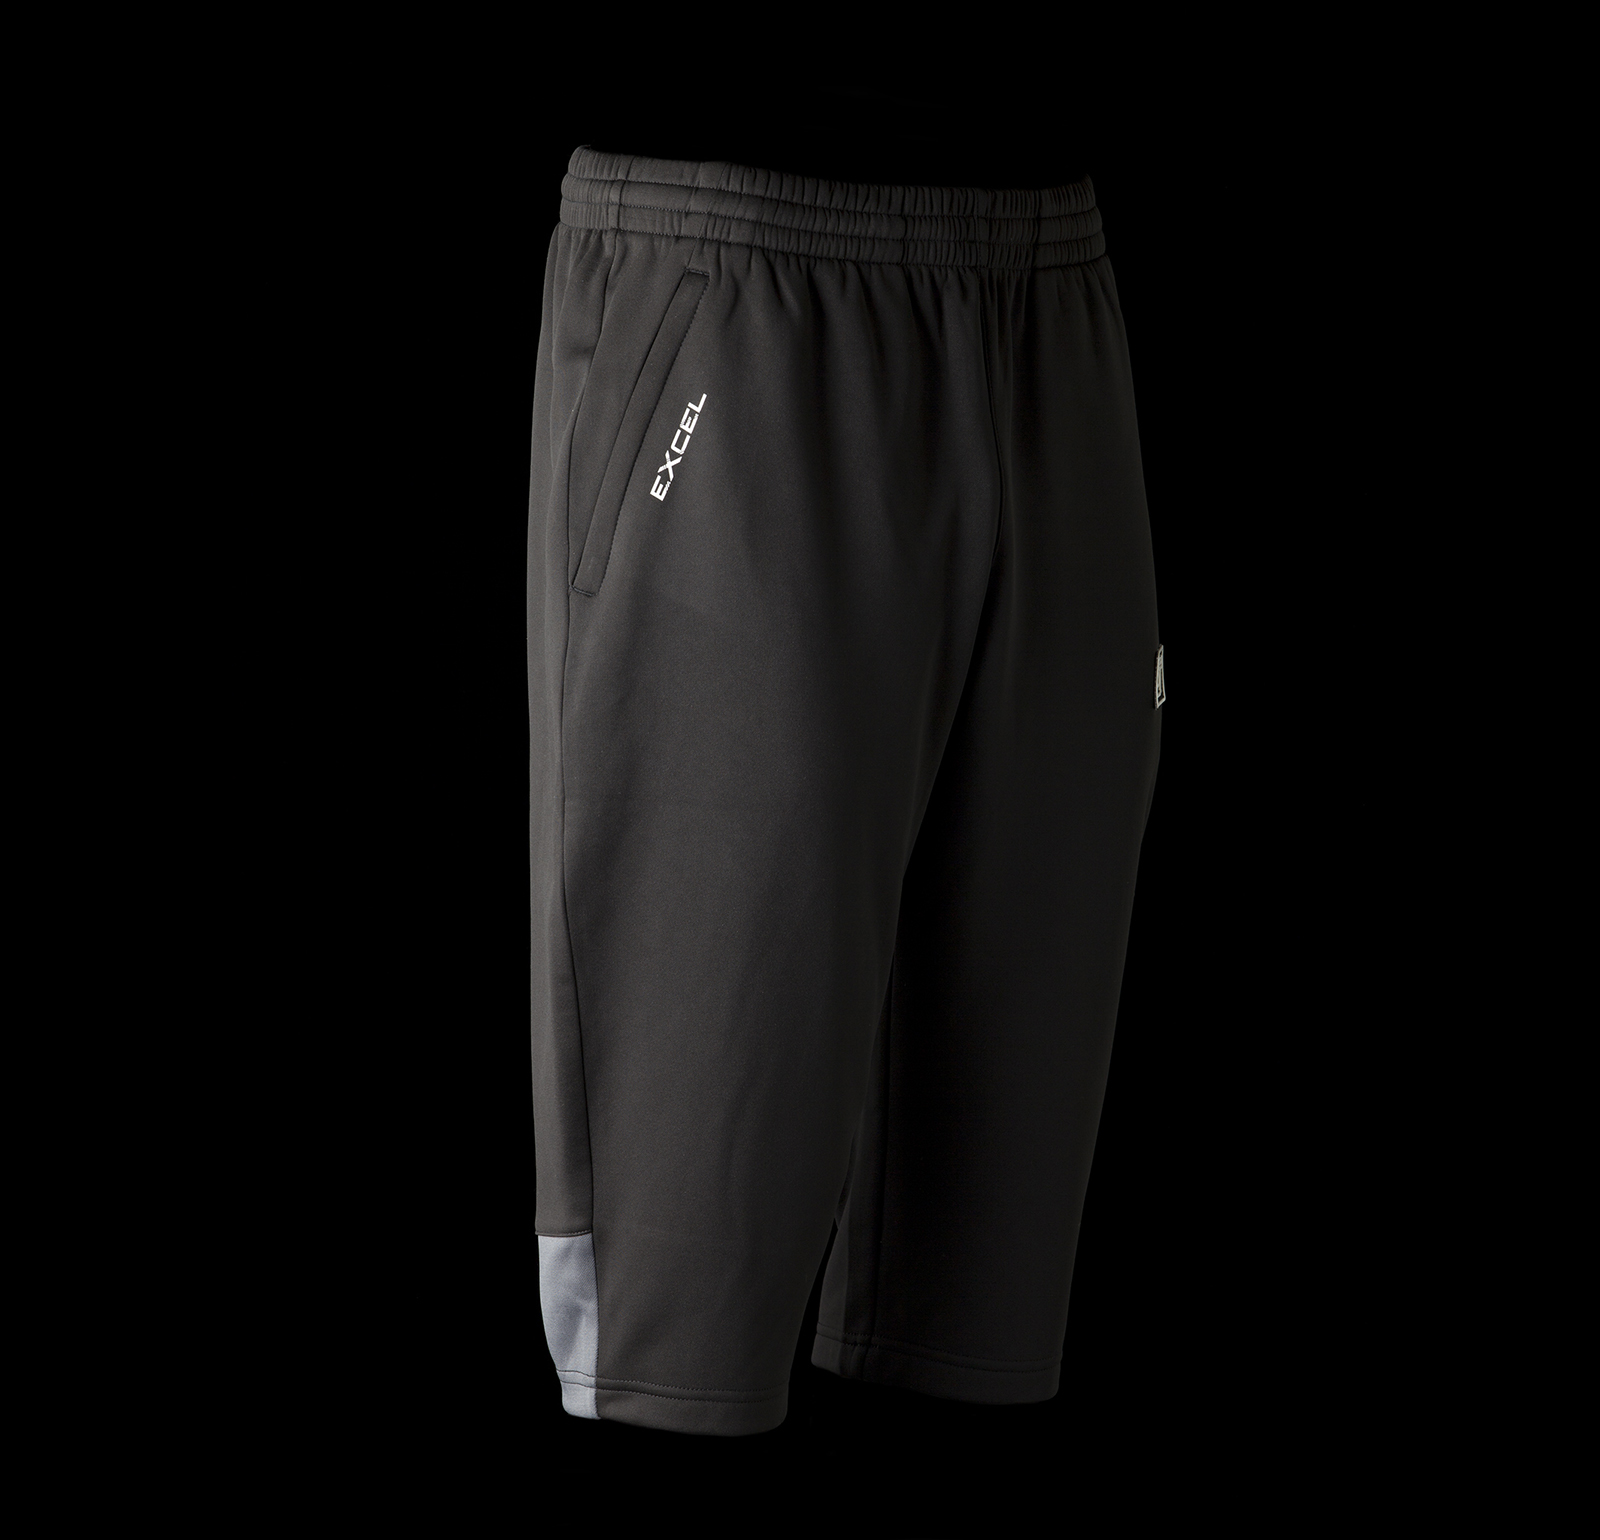 excel-3-4-pant-promo-64